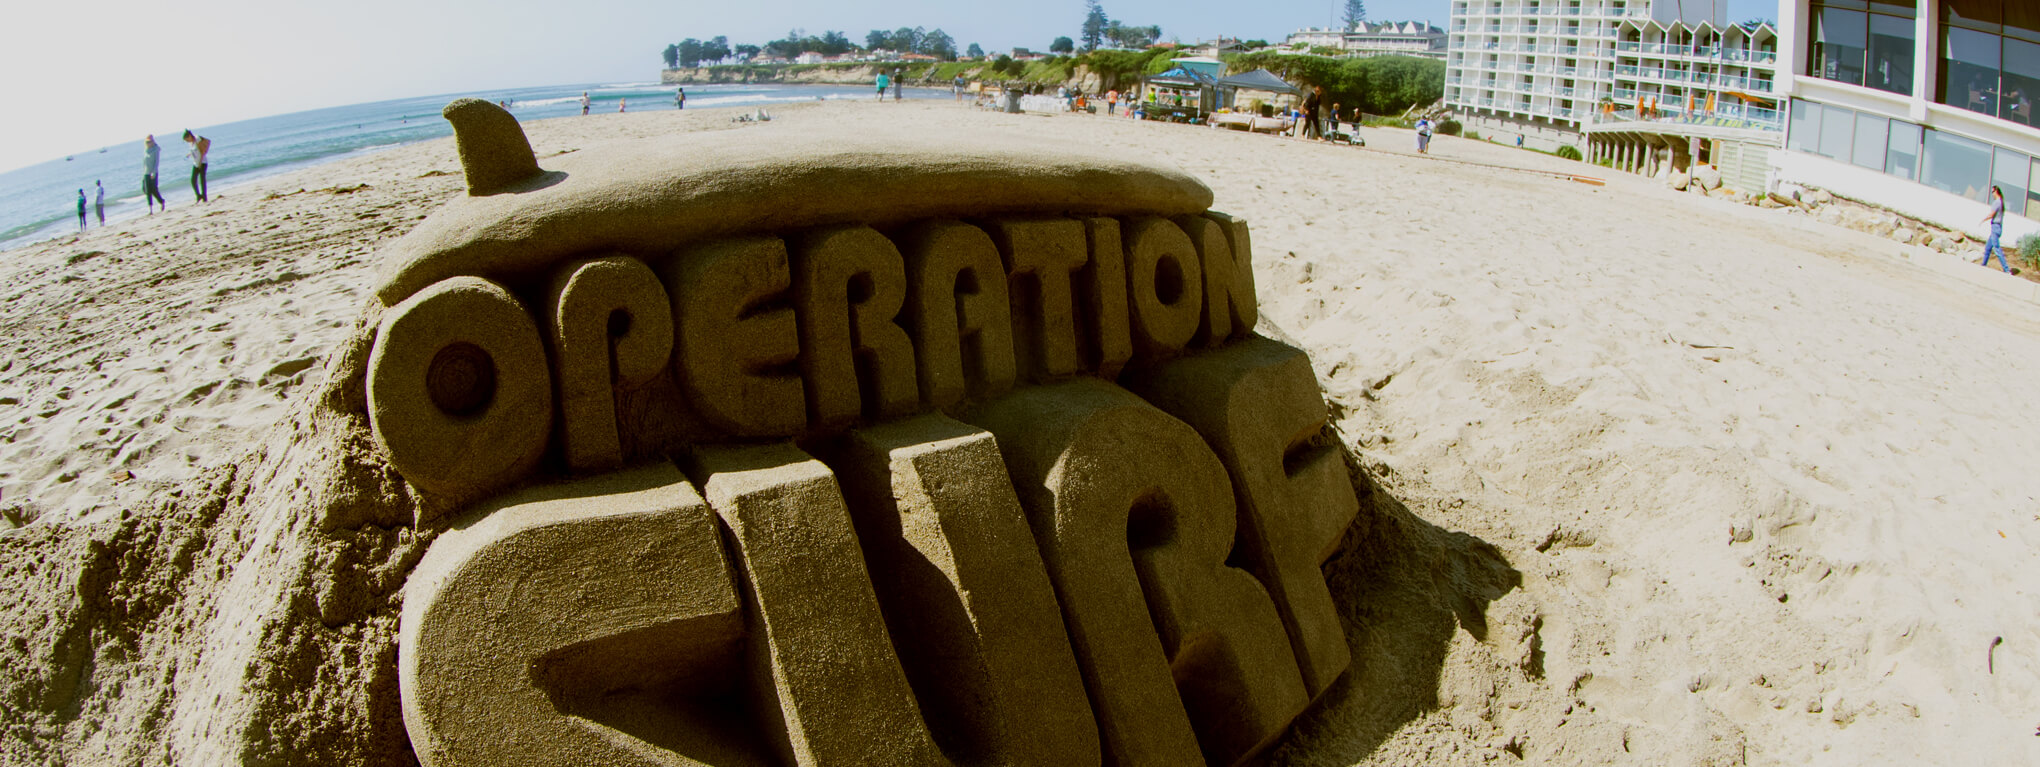 Operation Surf sand sculpture